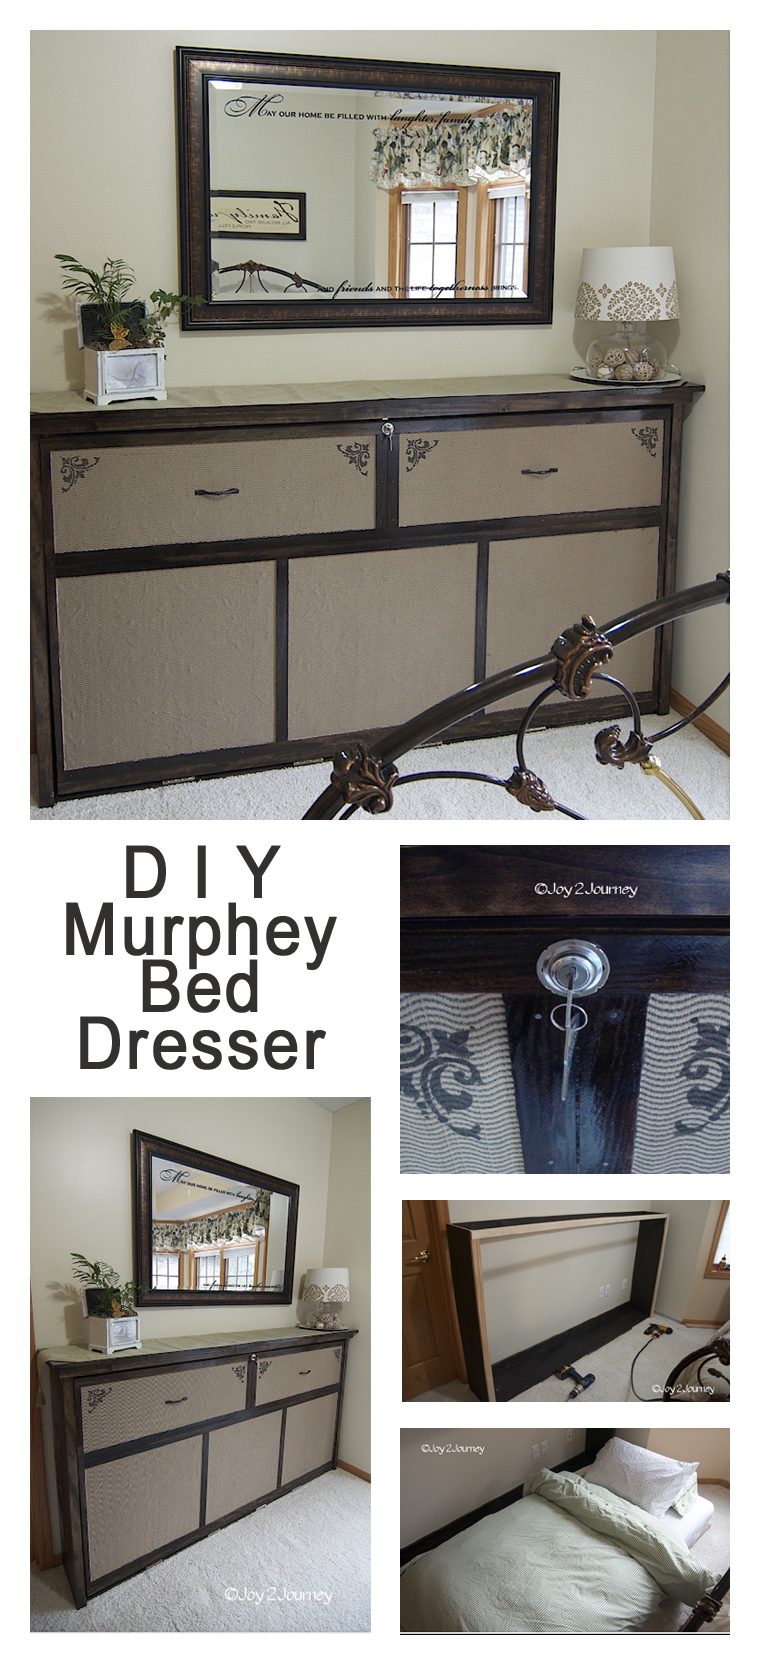 DIY Murphey Bed Faux Dresser